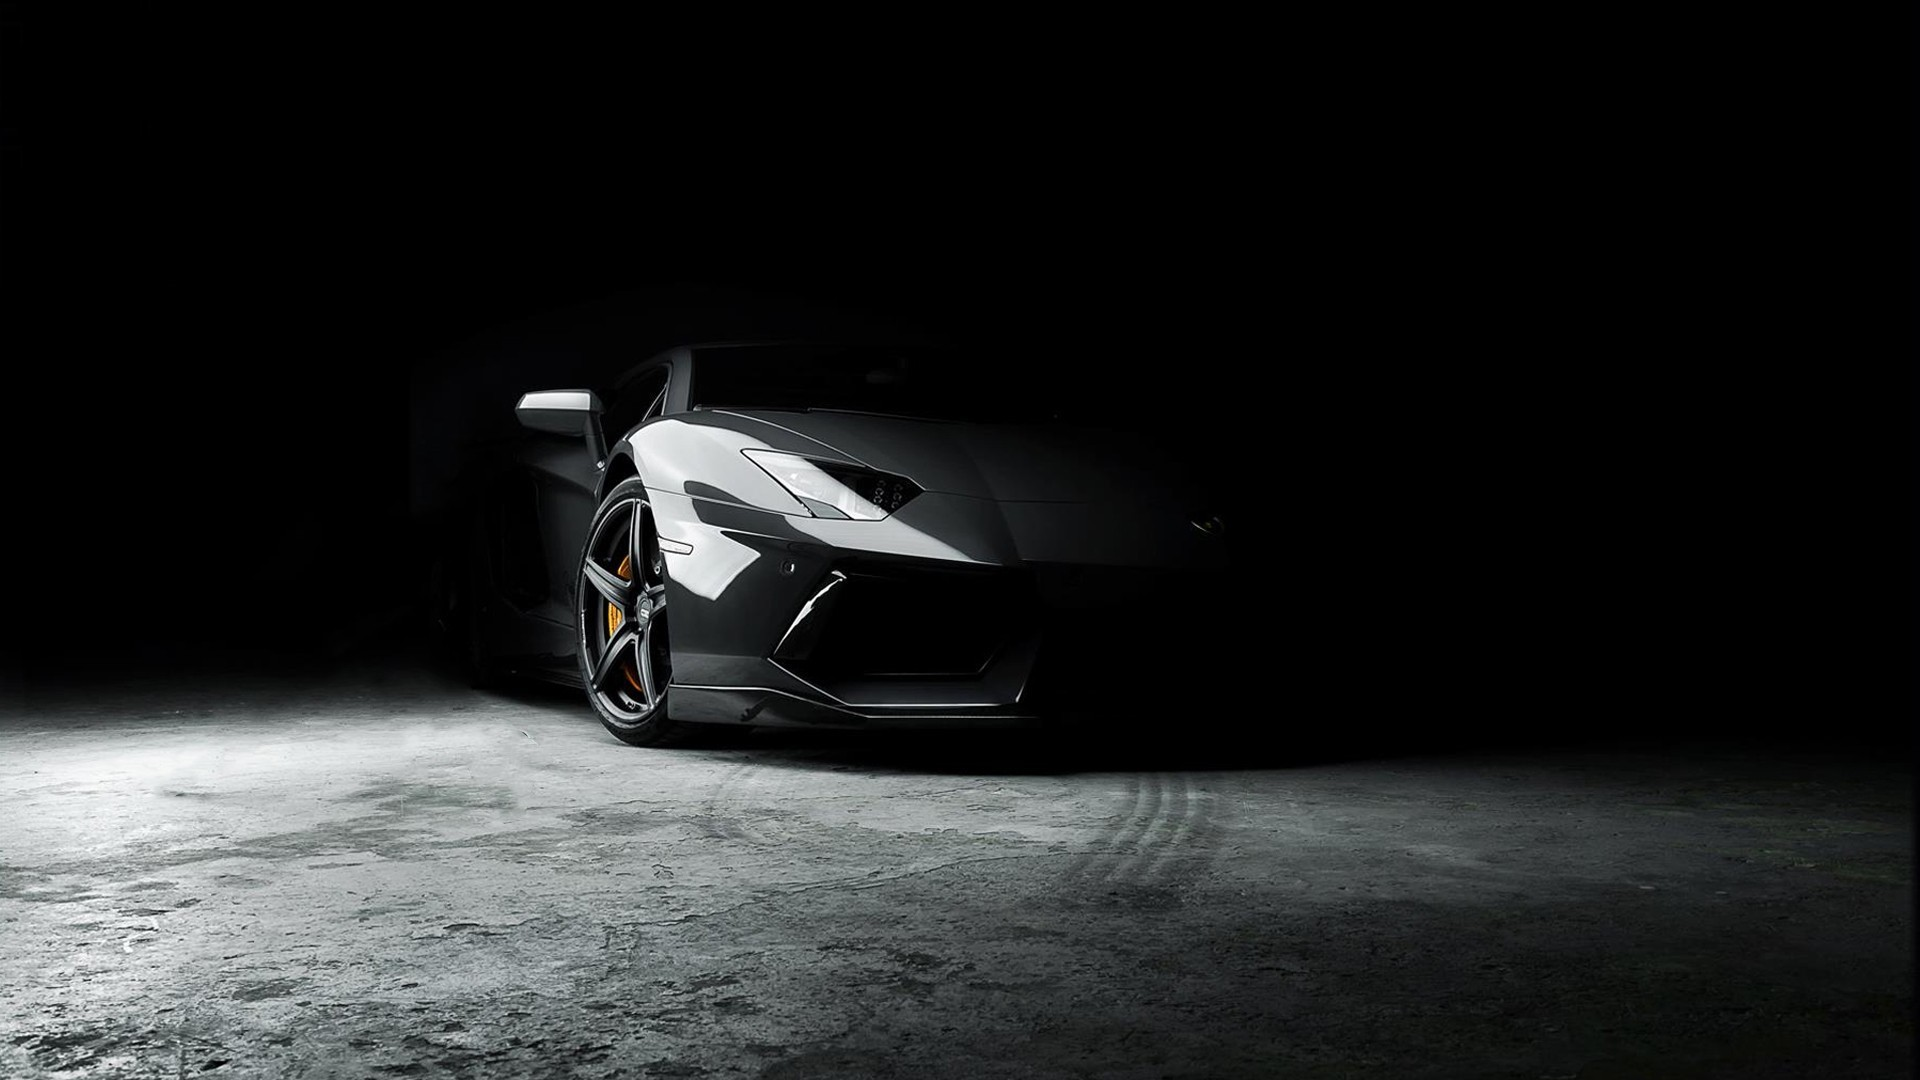 Lamborghini Aventador Cars Wallpapers Black Lamborghini Wallpaper 72 Images